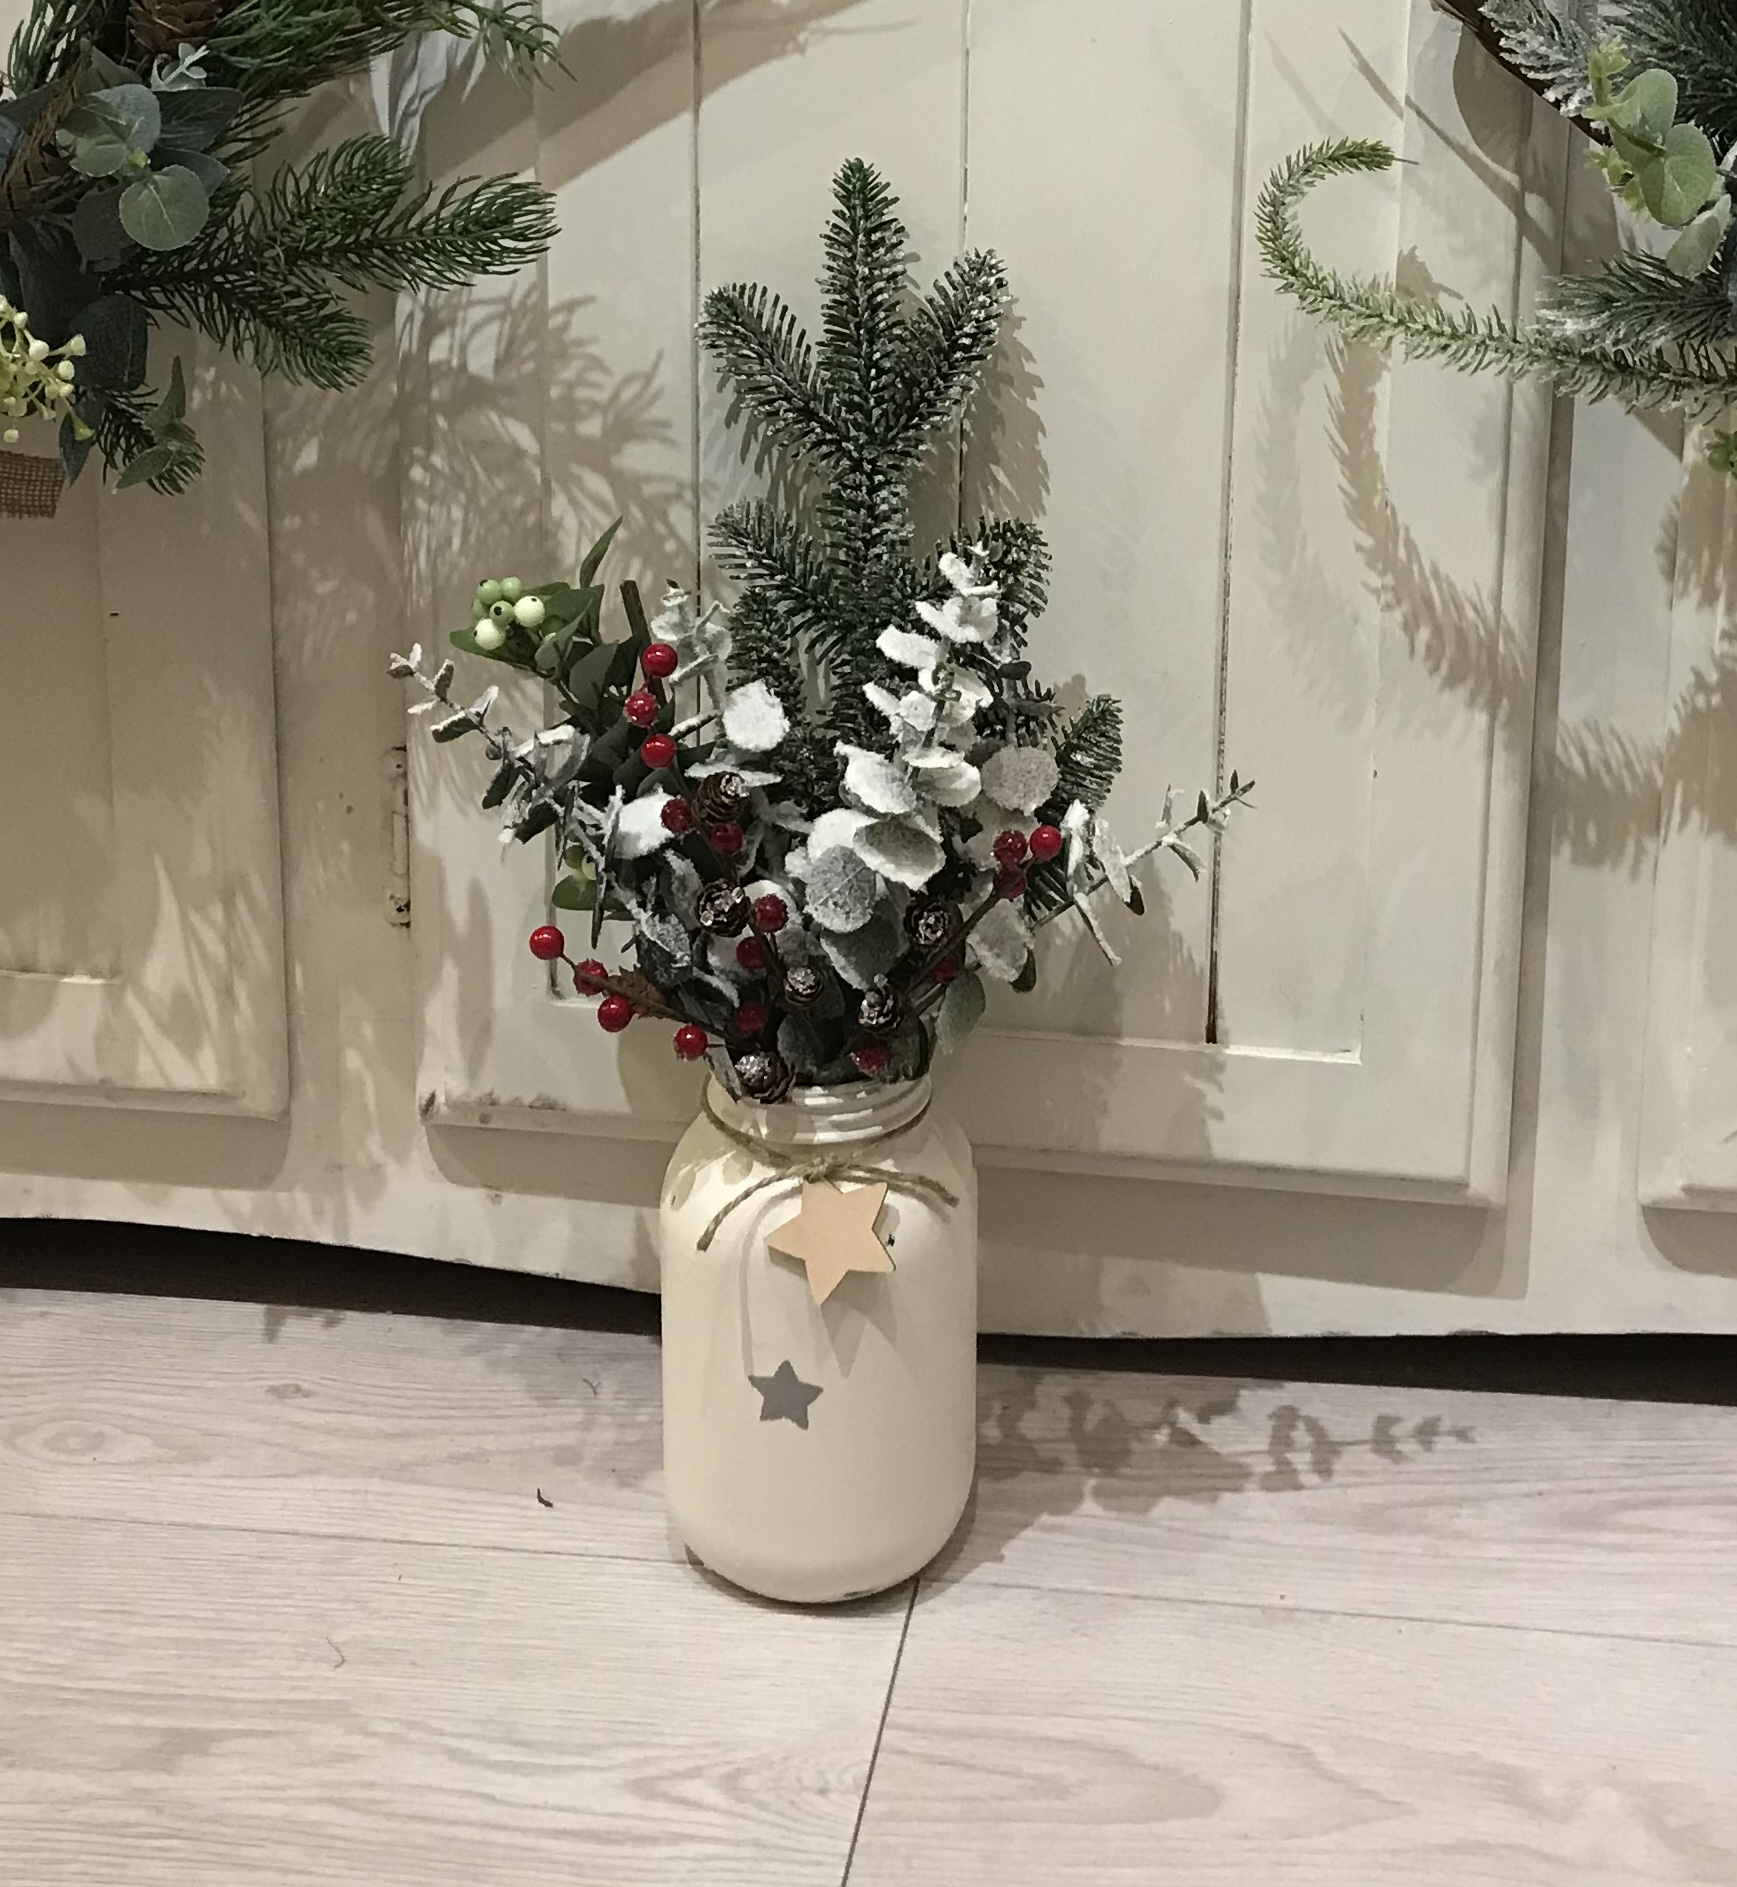 Painted jar with Christmas sprigs